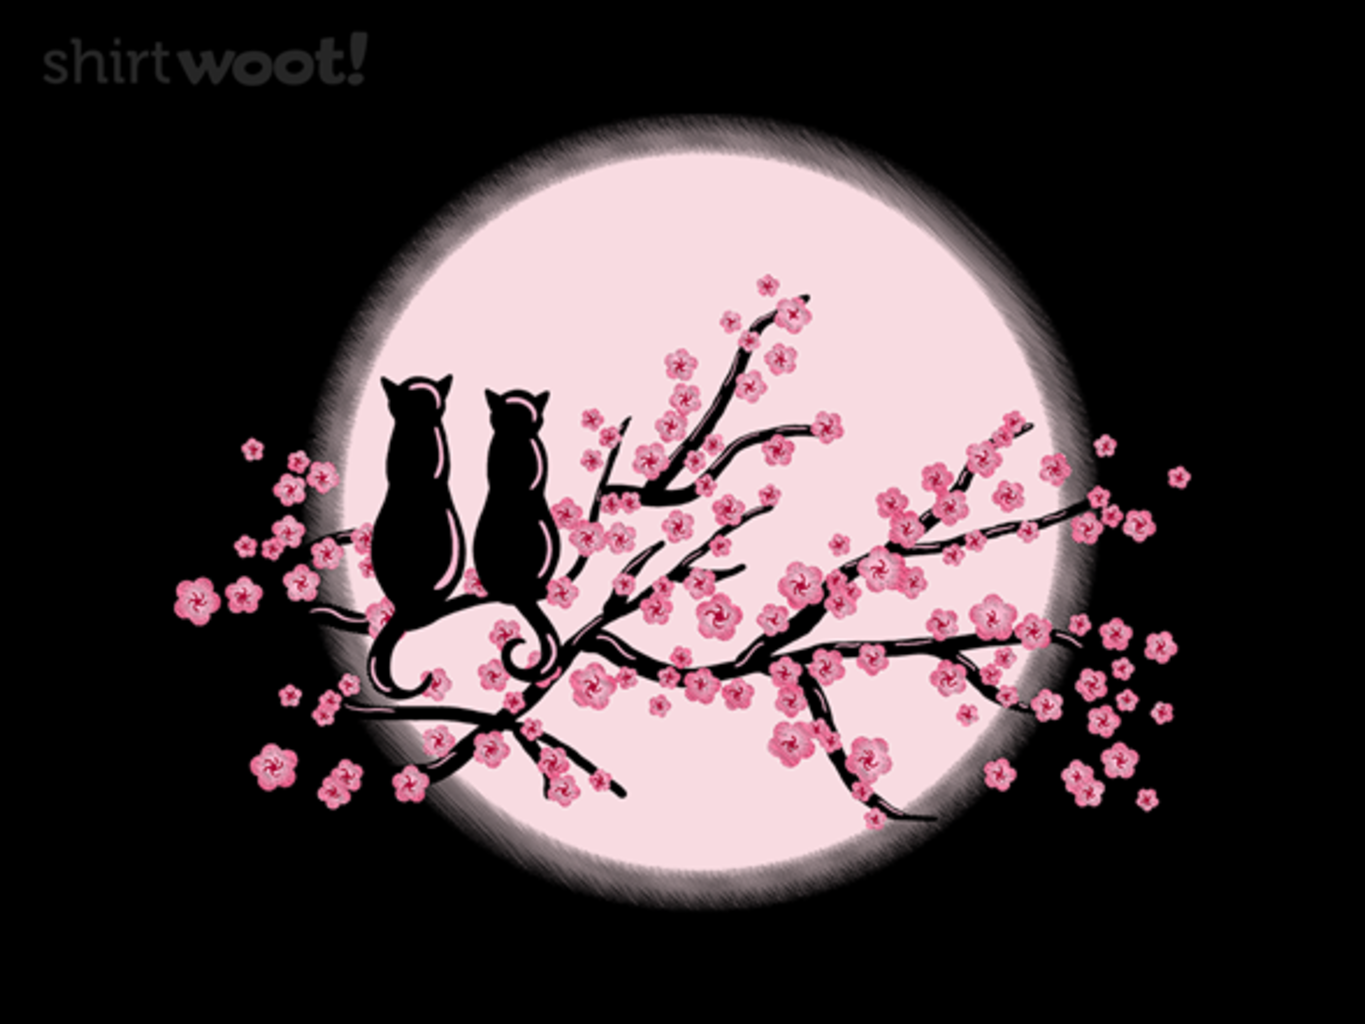 Woot!: Kitty Blossoms